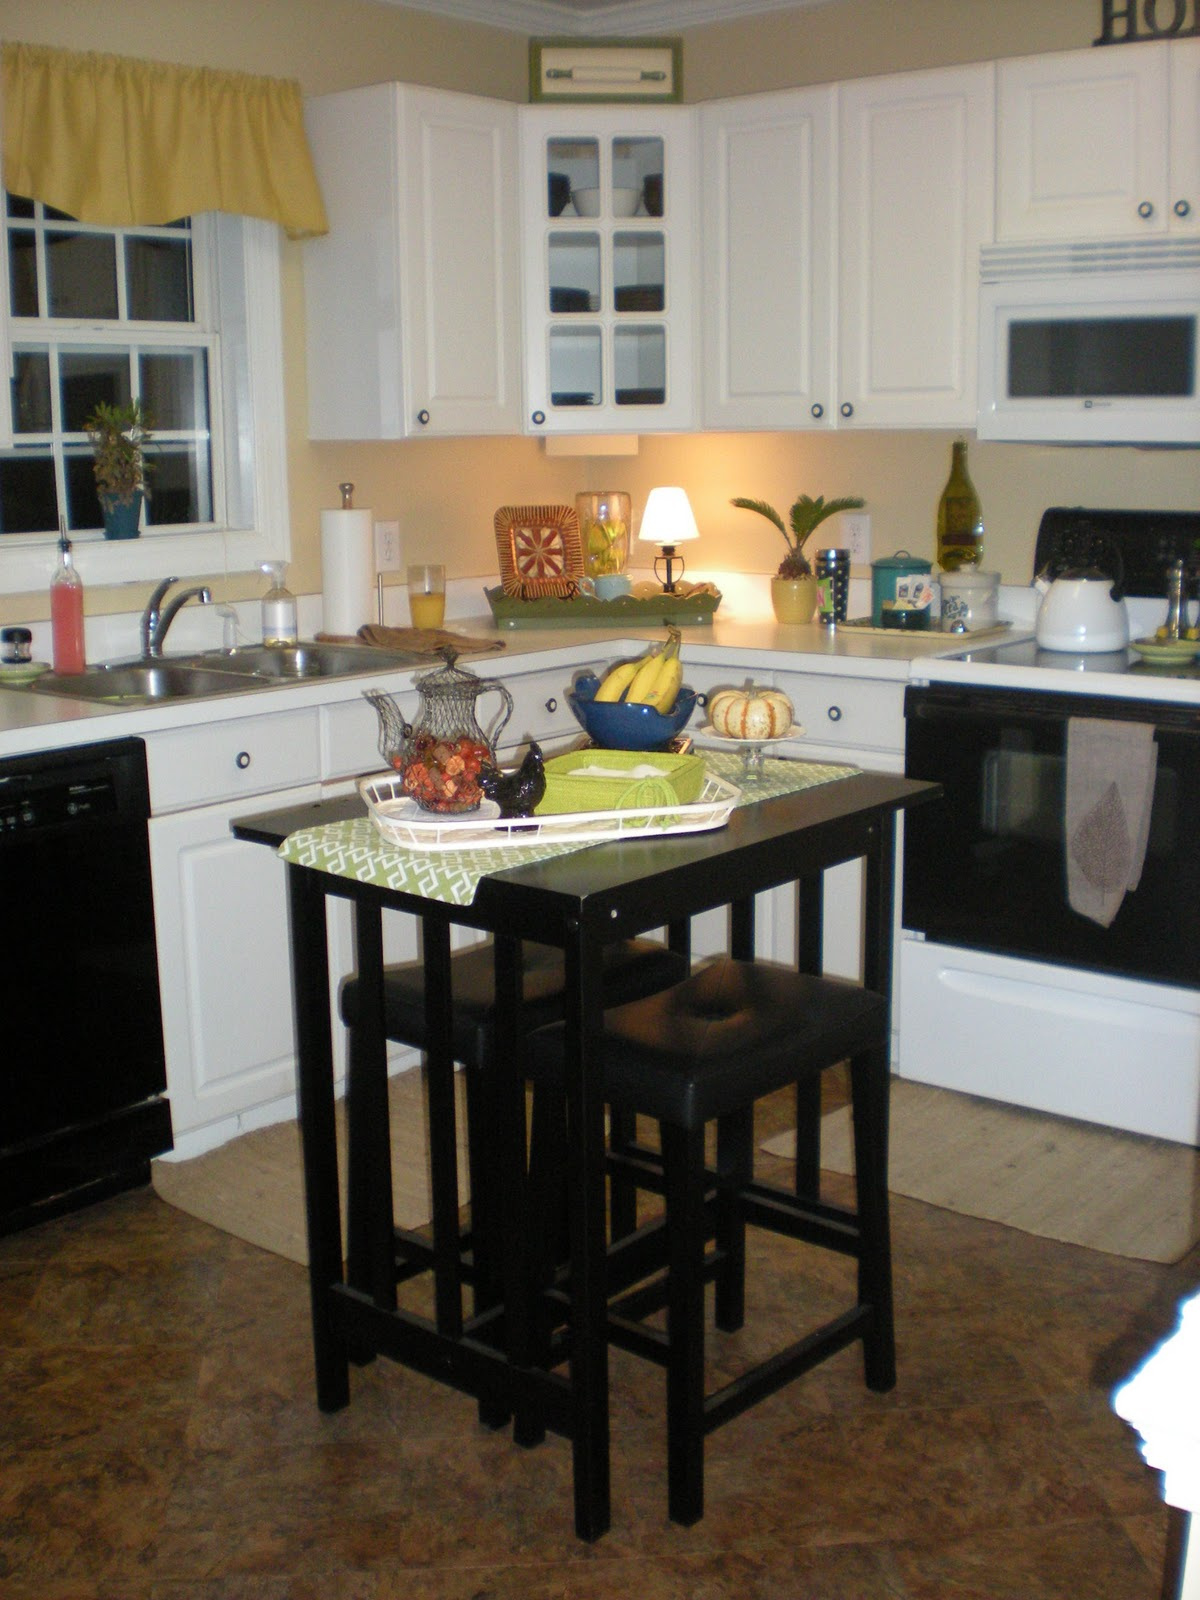 Thrifty Finds and Redesigns: Create your own Kitchen Island...